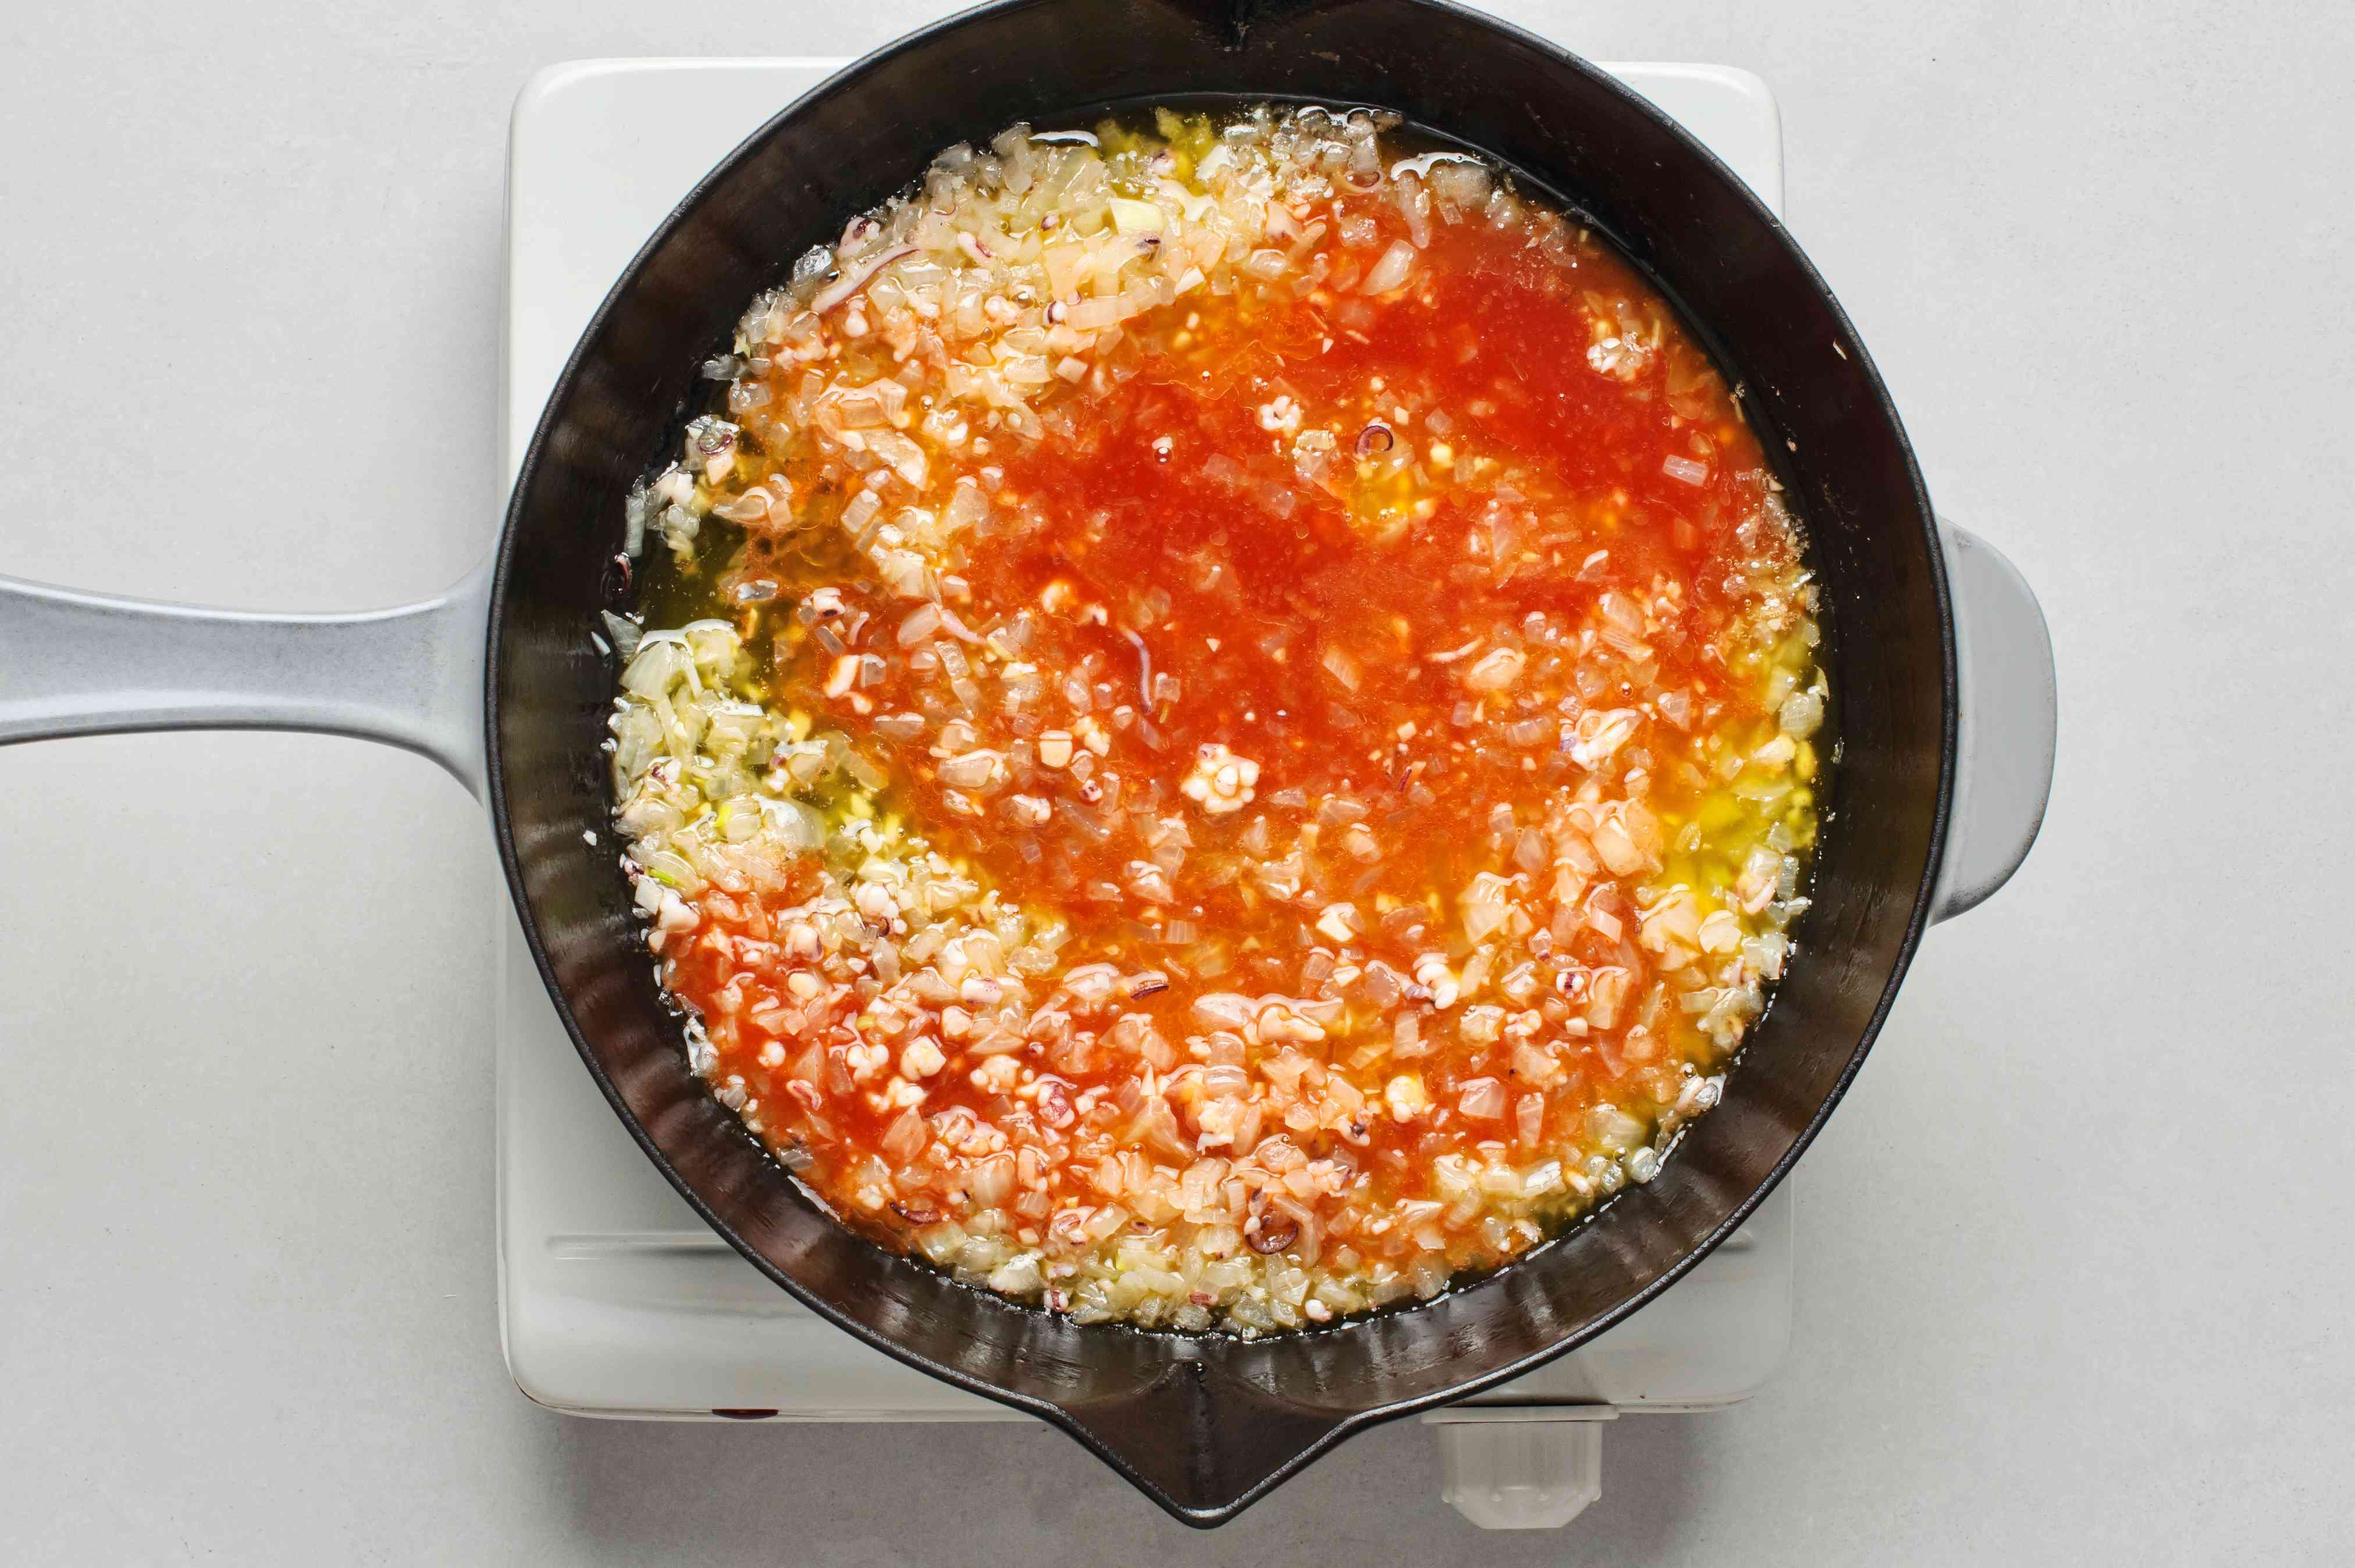 A pan with tomato mixture, cooked onions, and tentacles